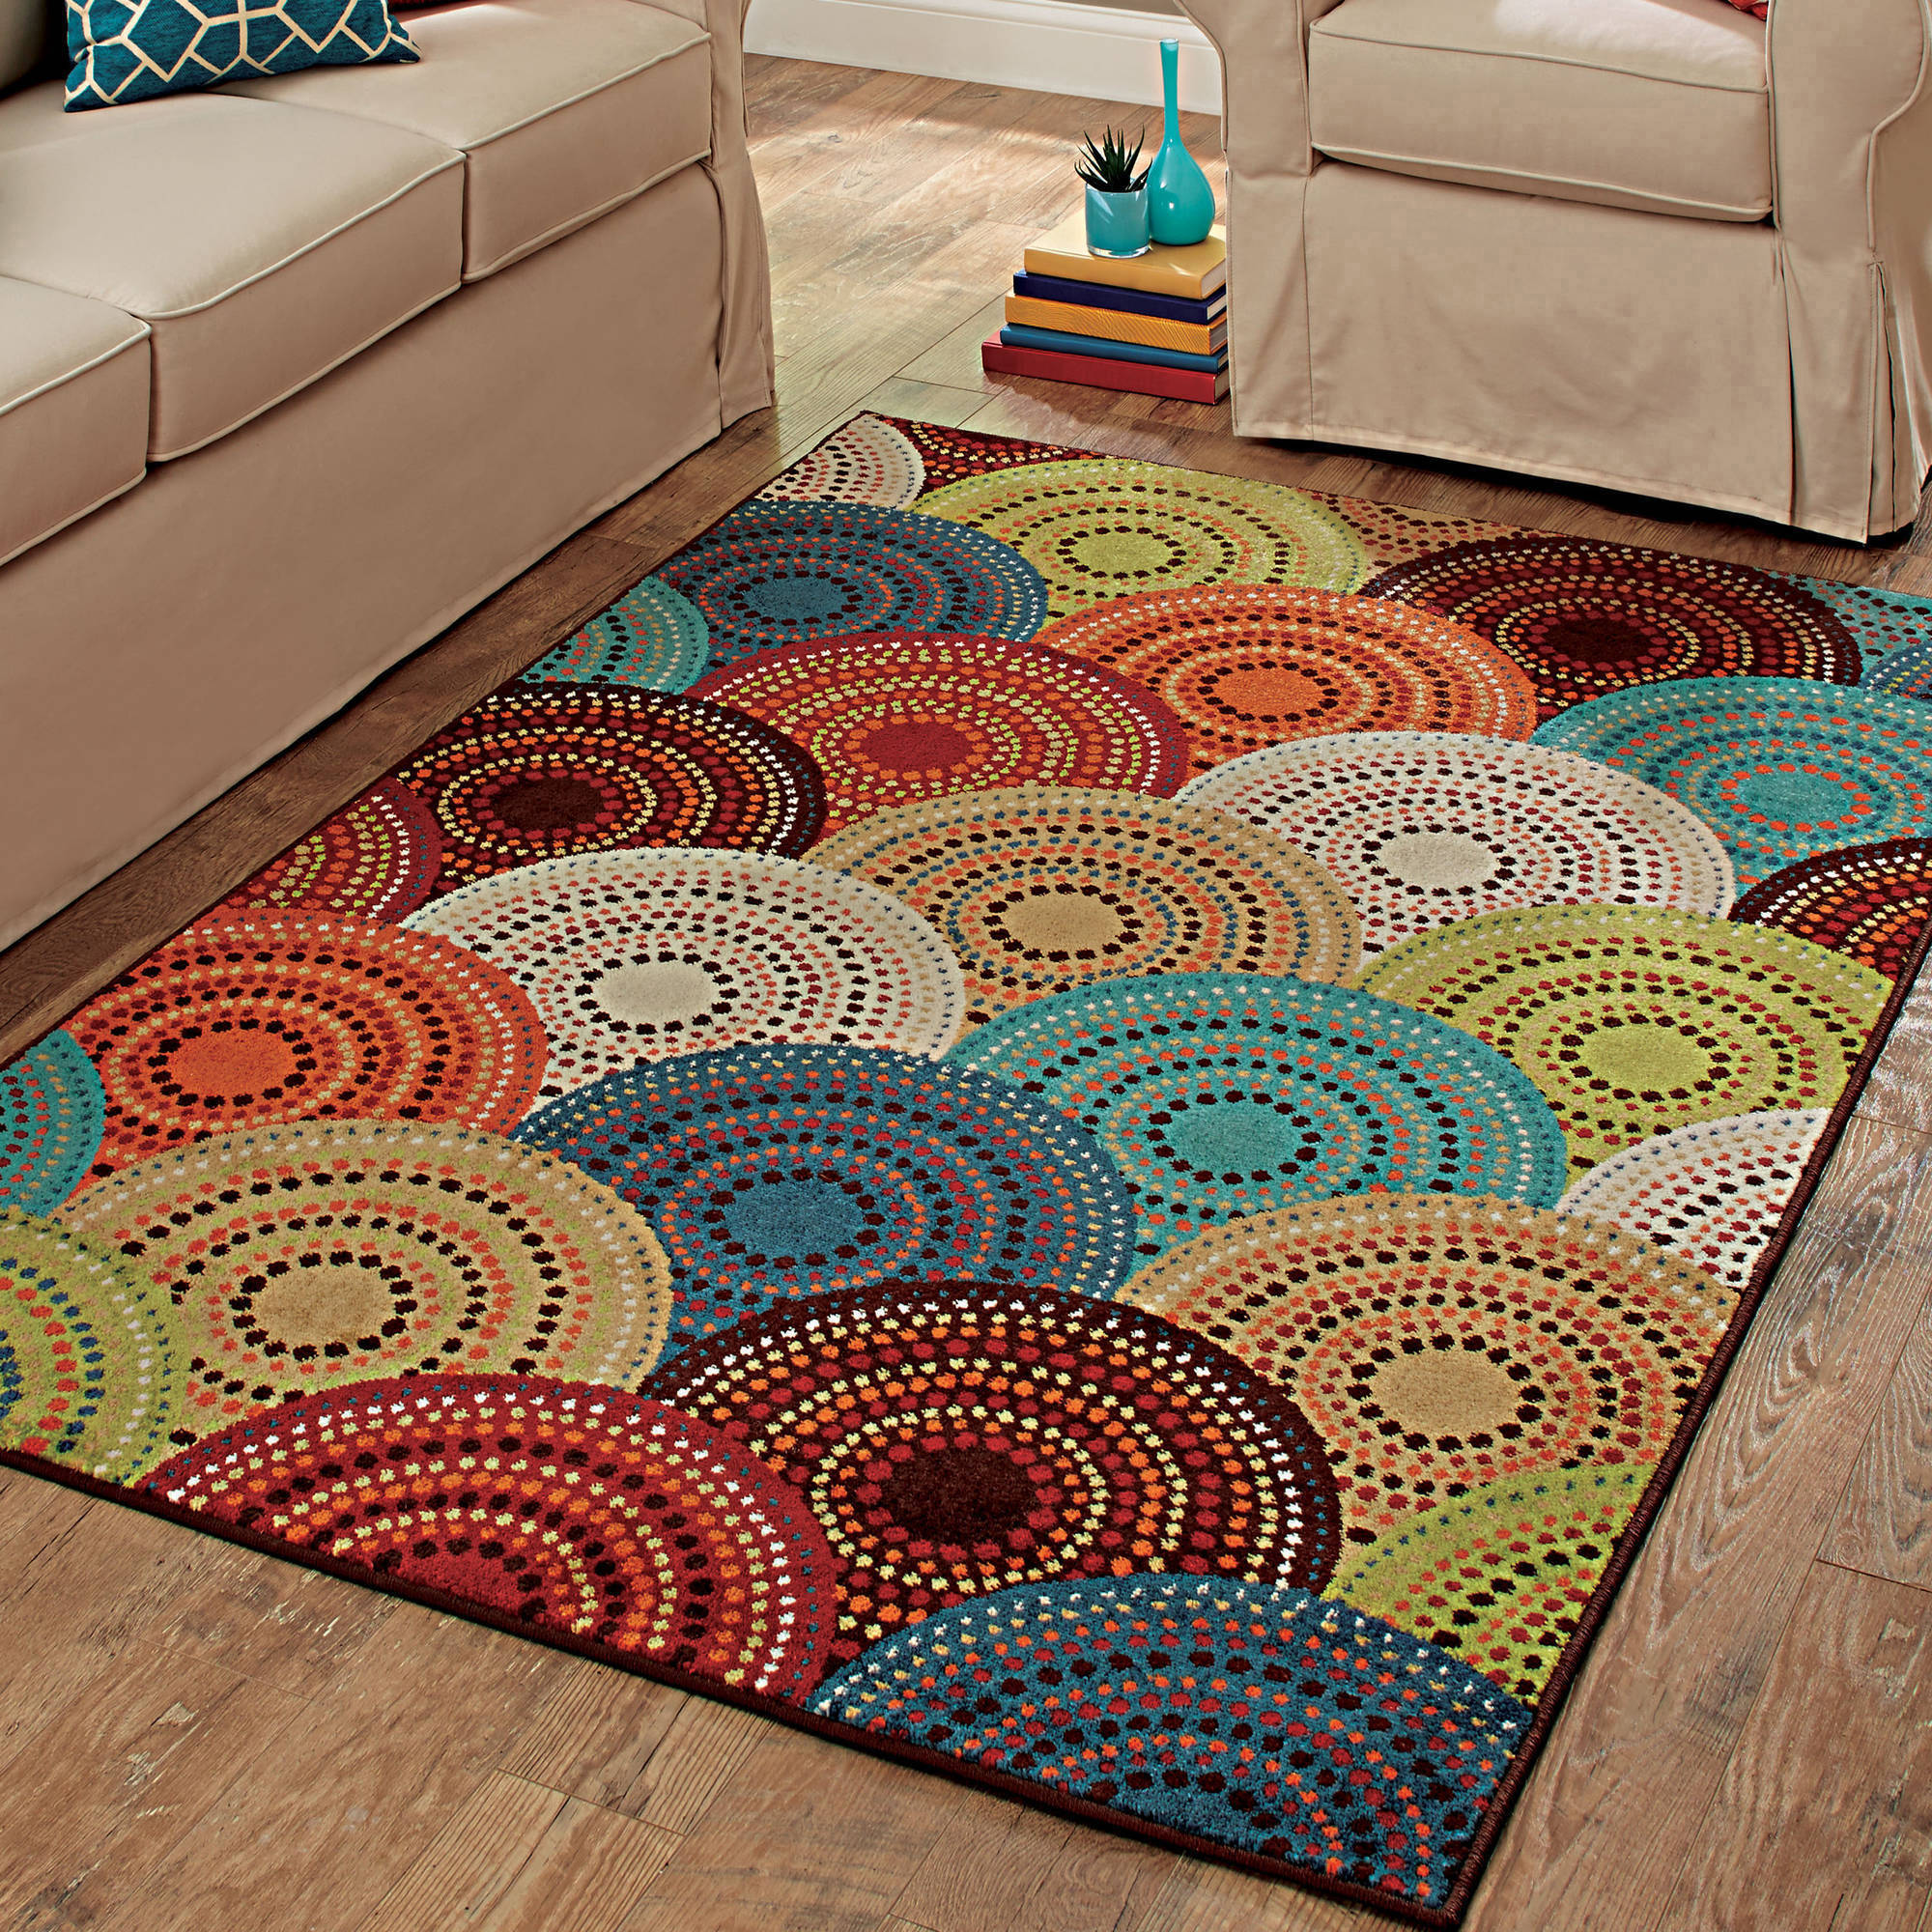 Popular 225 List Colorful Area Rugs